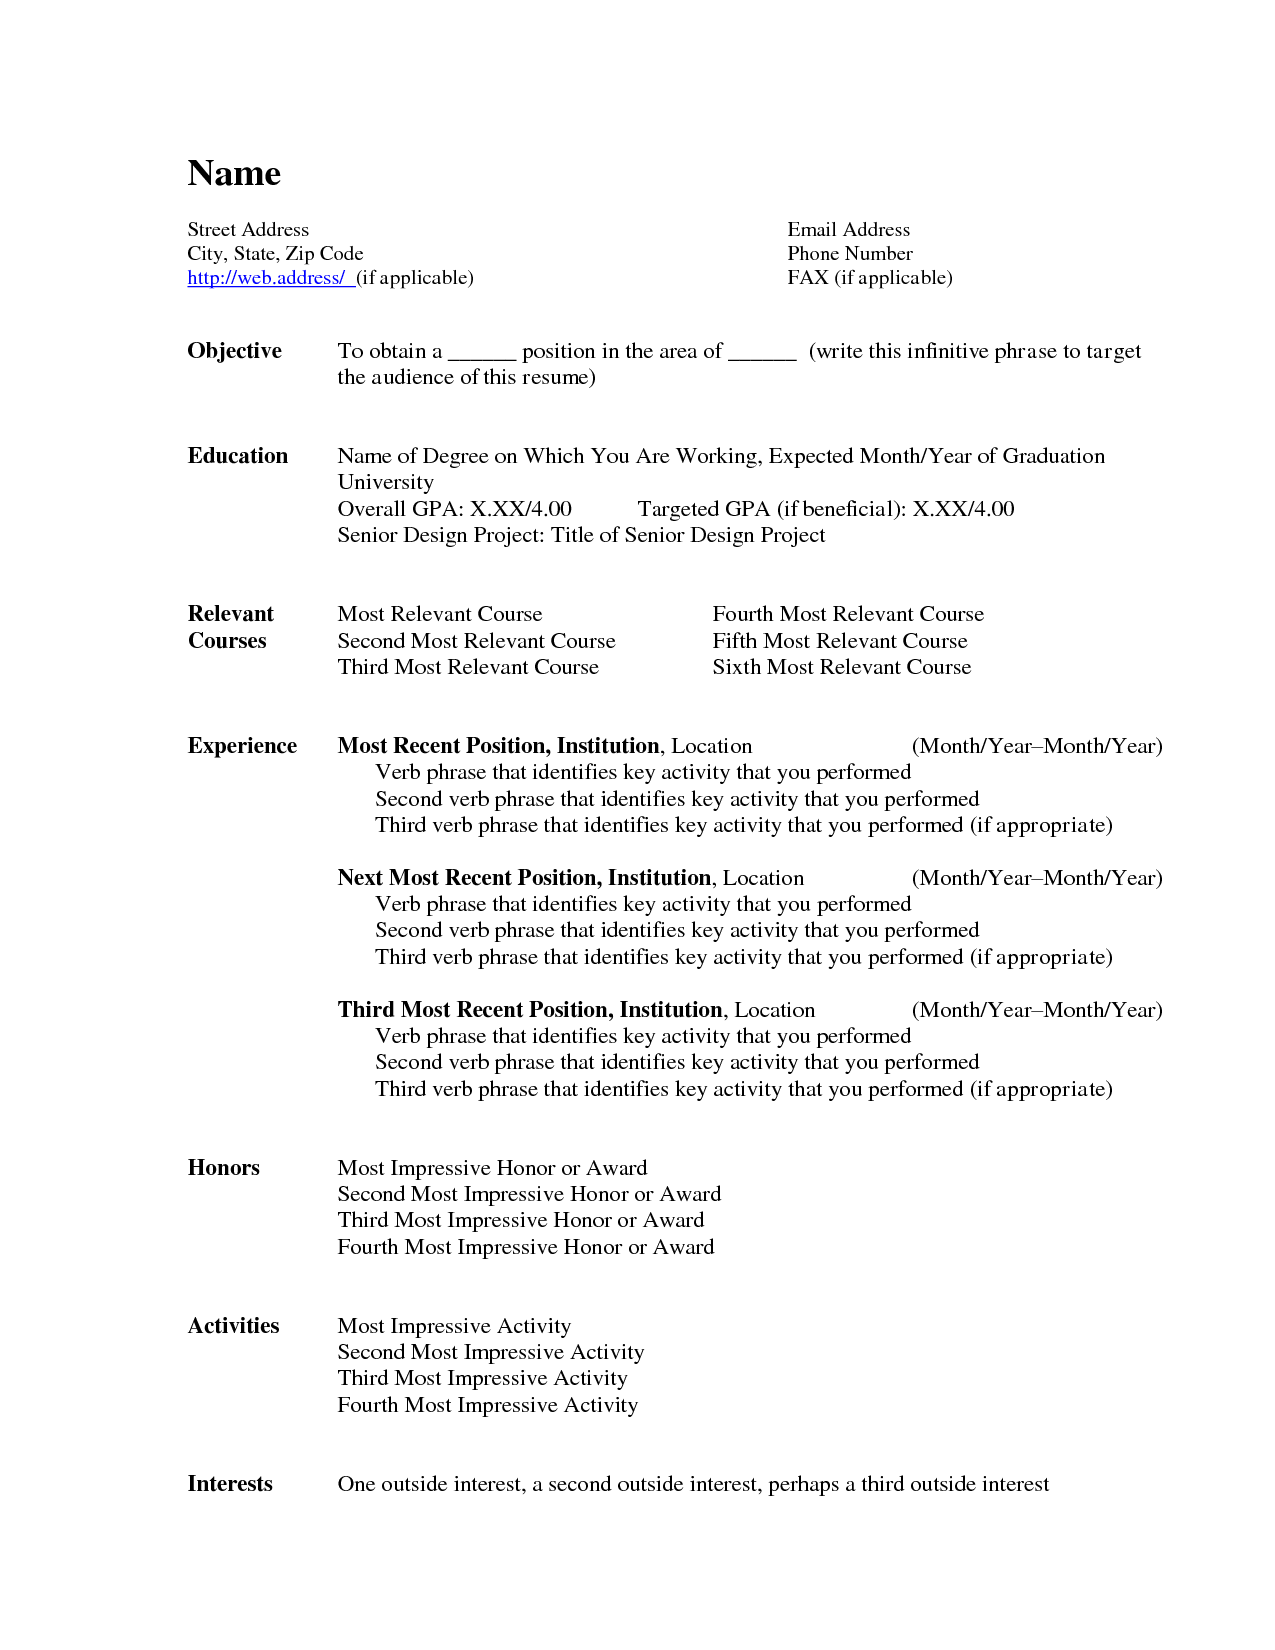 educator resume templates microsoft word educator resume templates